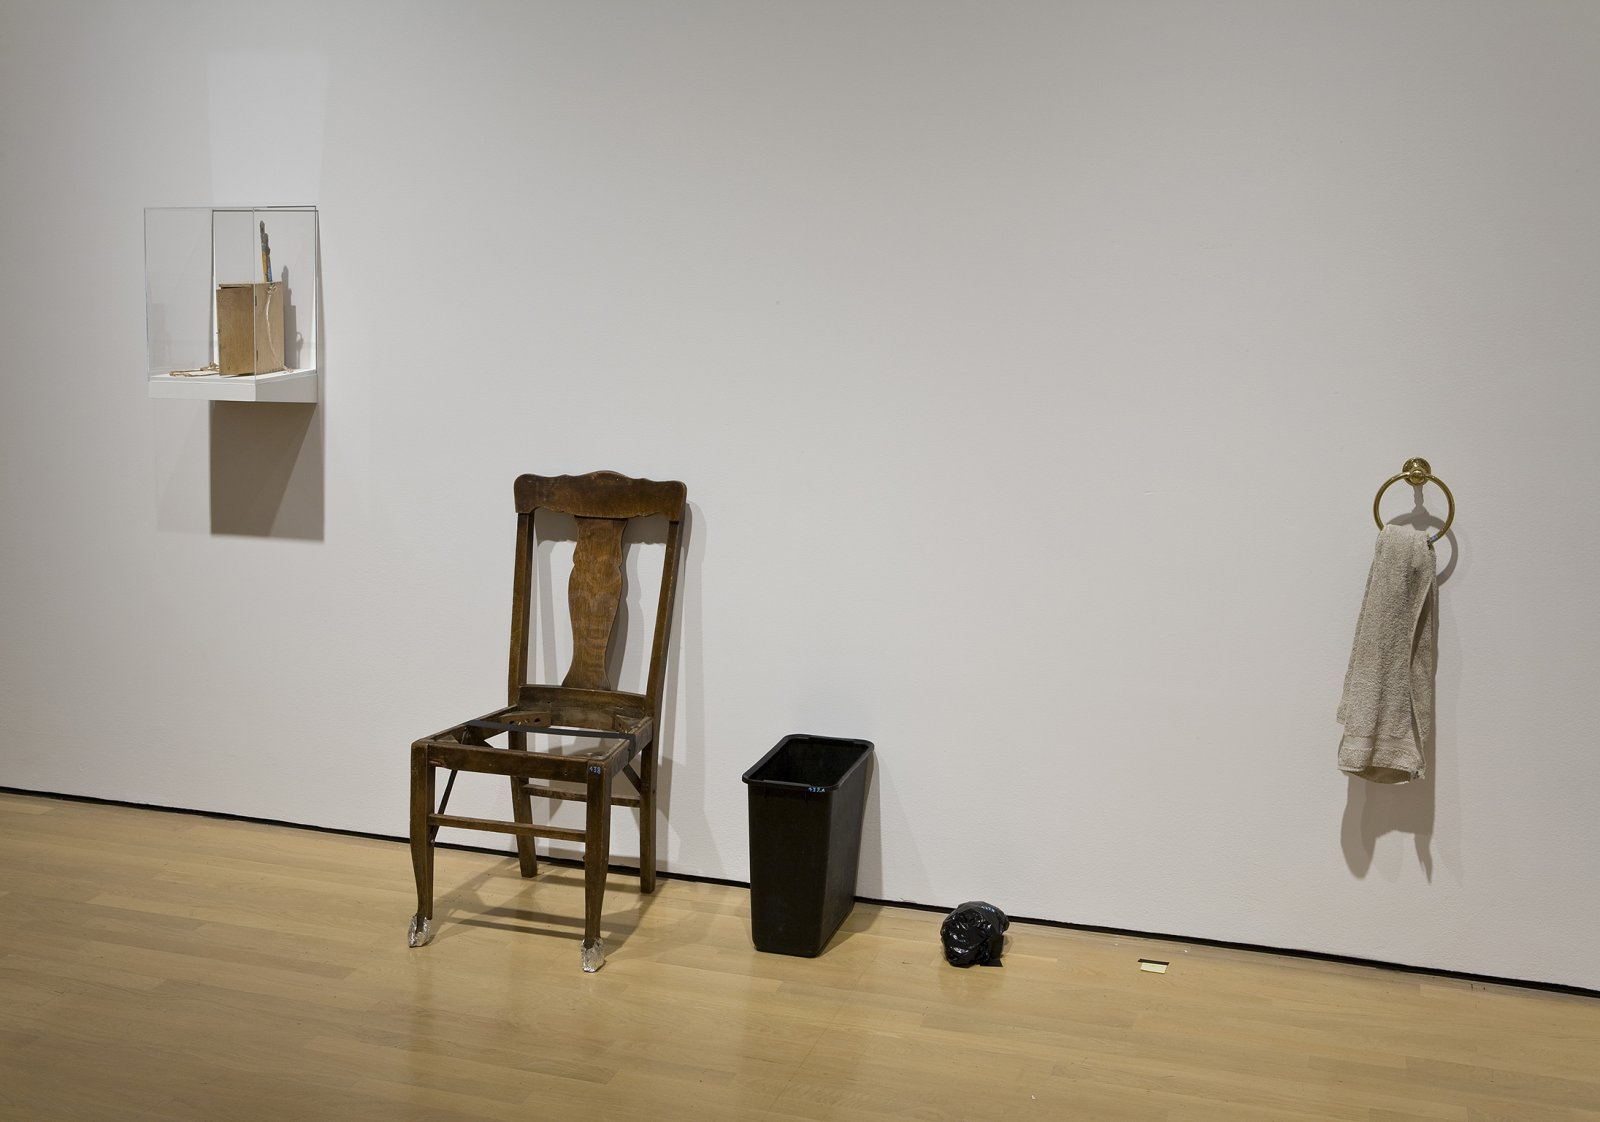 Geoffrey Farmer, Void Numbering Project (continuous), 1992, wooden box containing various materials such as paint, paintbrushes, masking tape and shelf with plexiglass top, dimensions variable by Geoffrey Farmer